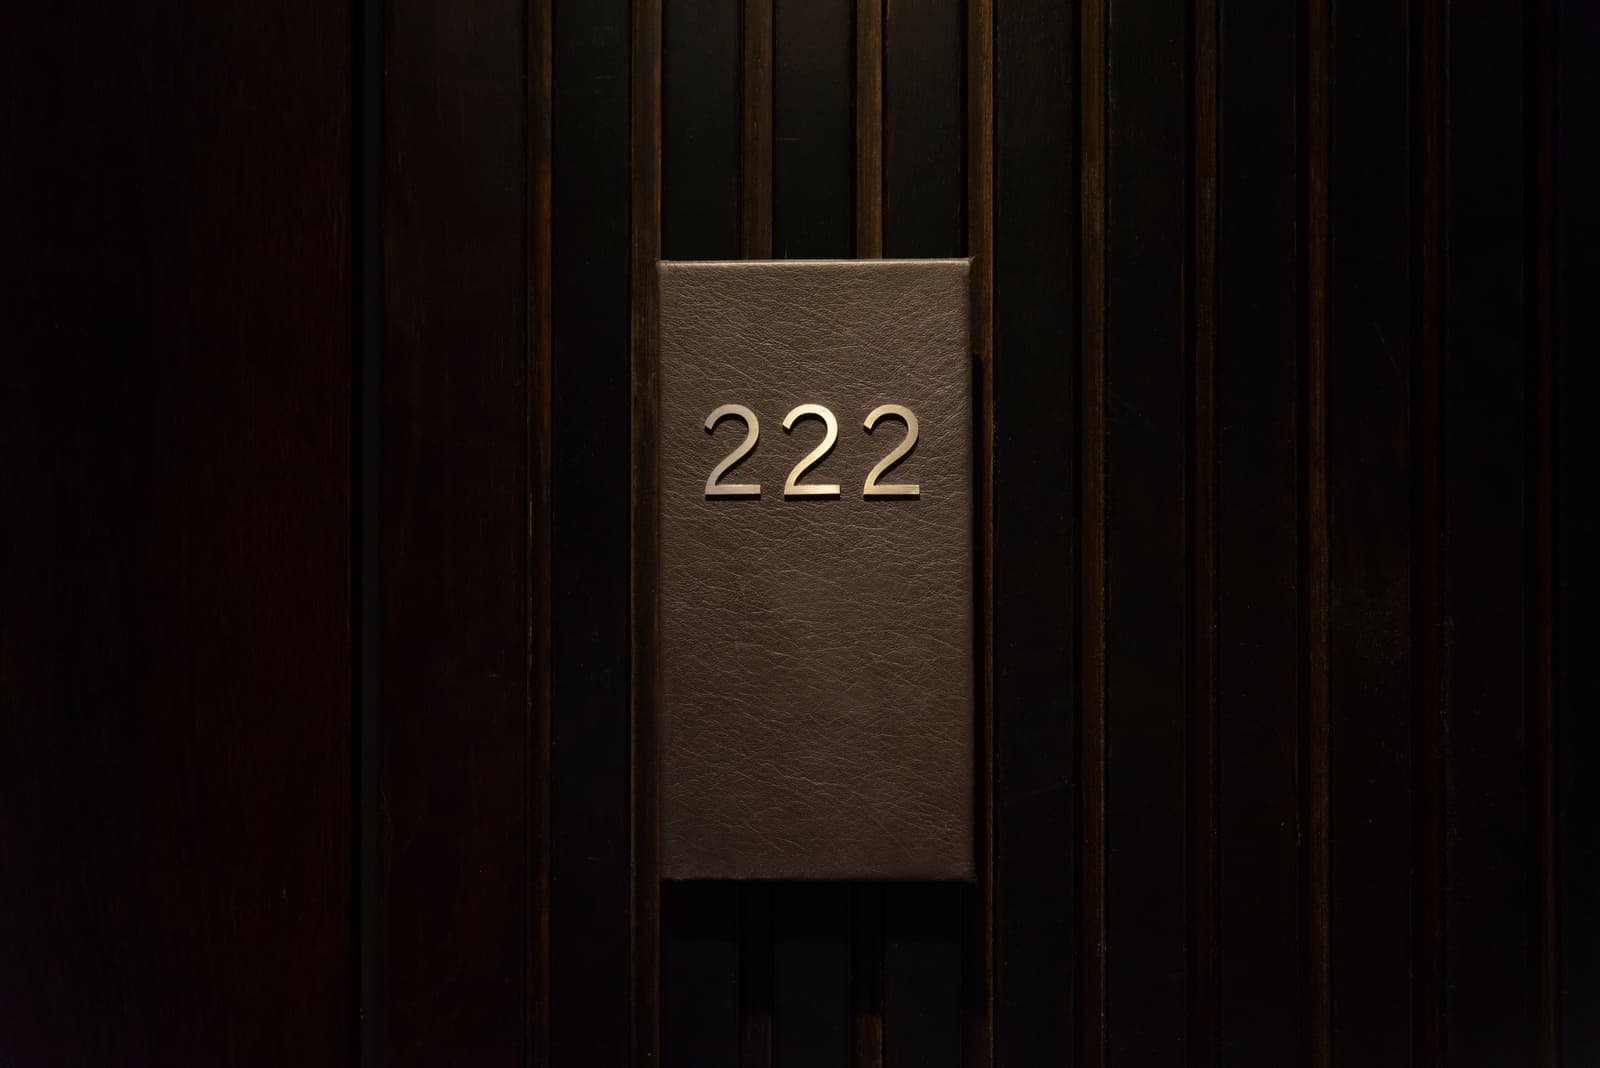 number 222 in the hotel room